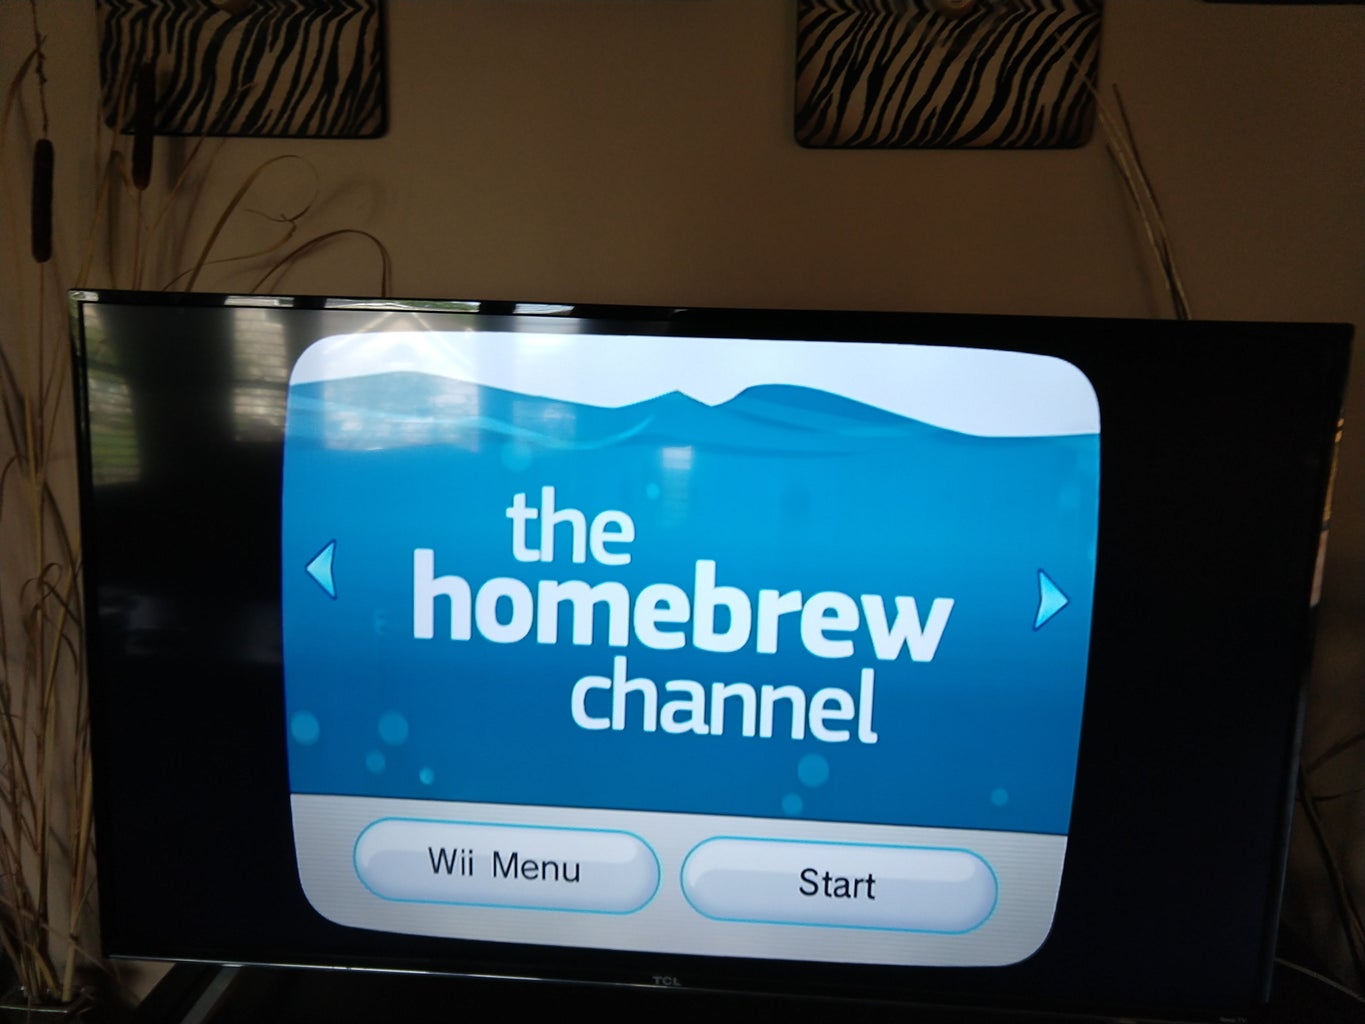 (For Homebrew Wii) Install WiiMC to Homebrew Channel and Open WiiMC